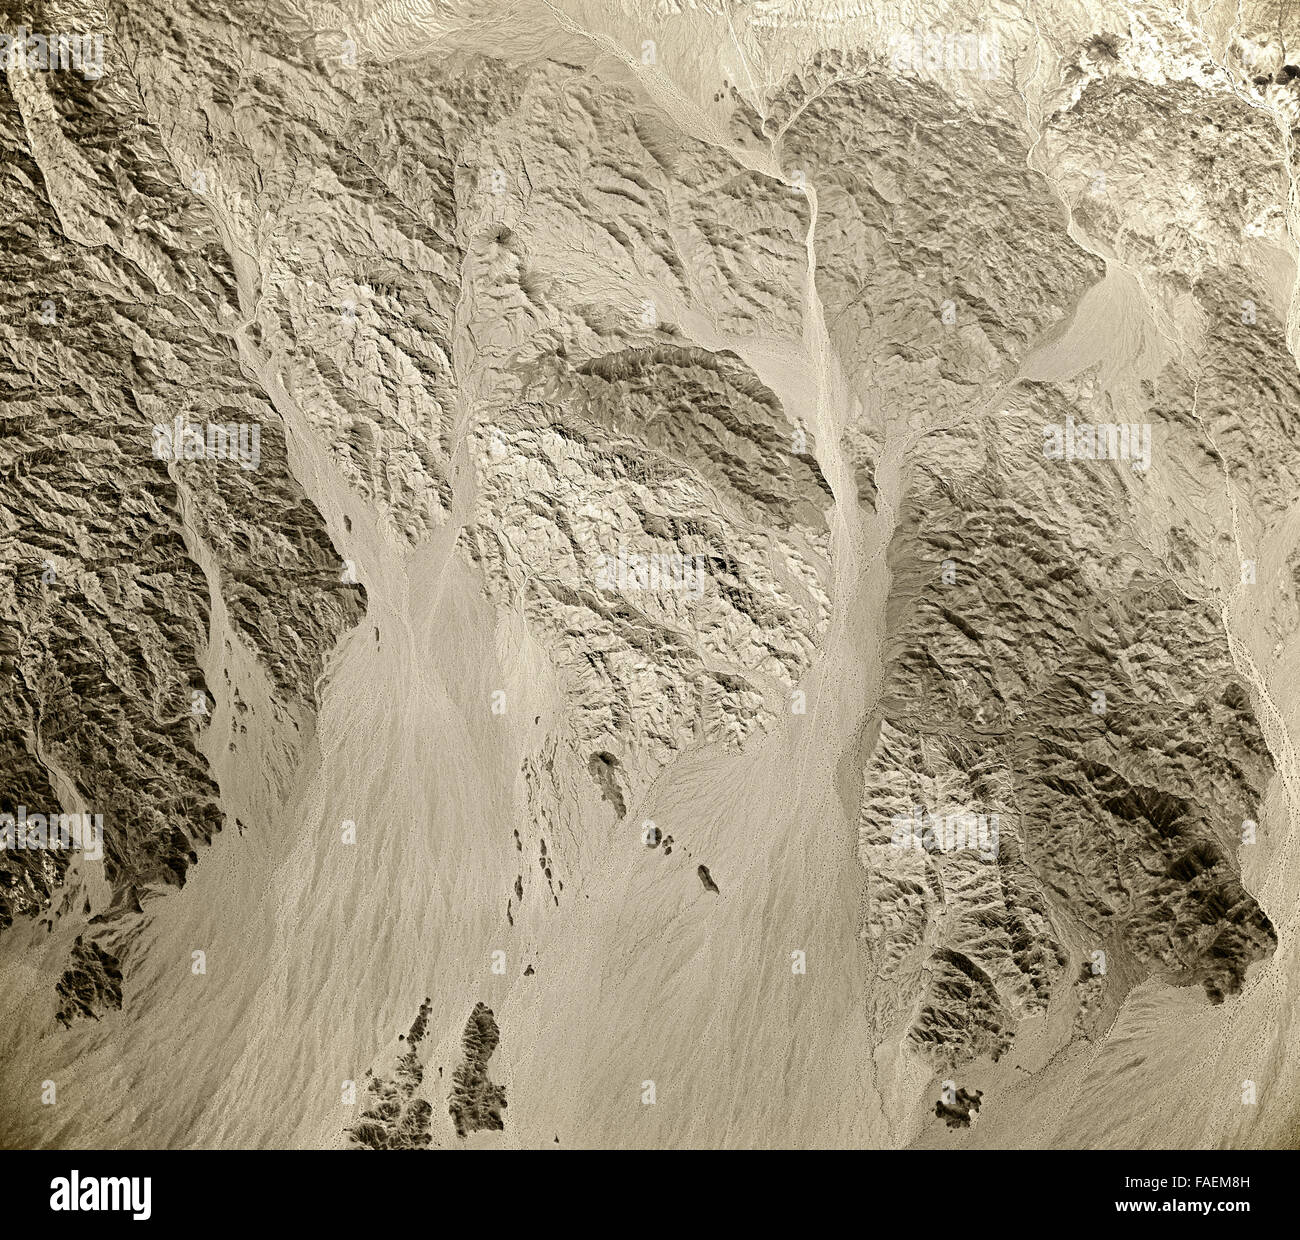 historical aerial photograph of desert and mountains east of Salton Sea, California, 1954 - Stock Image